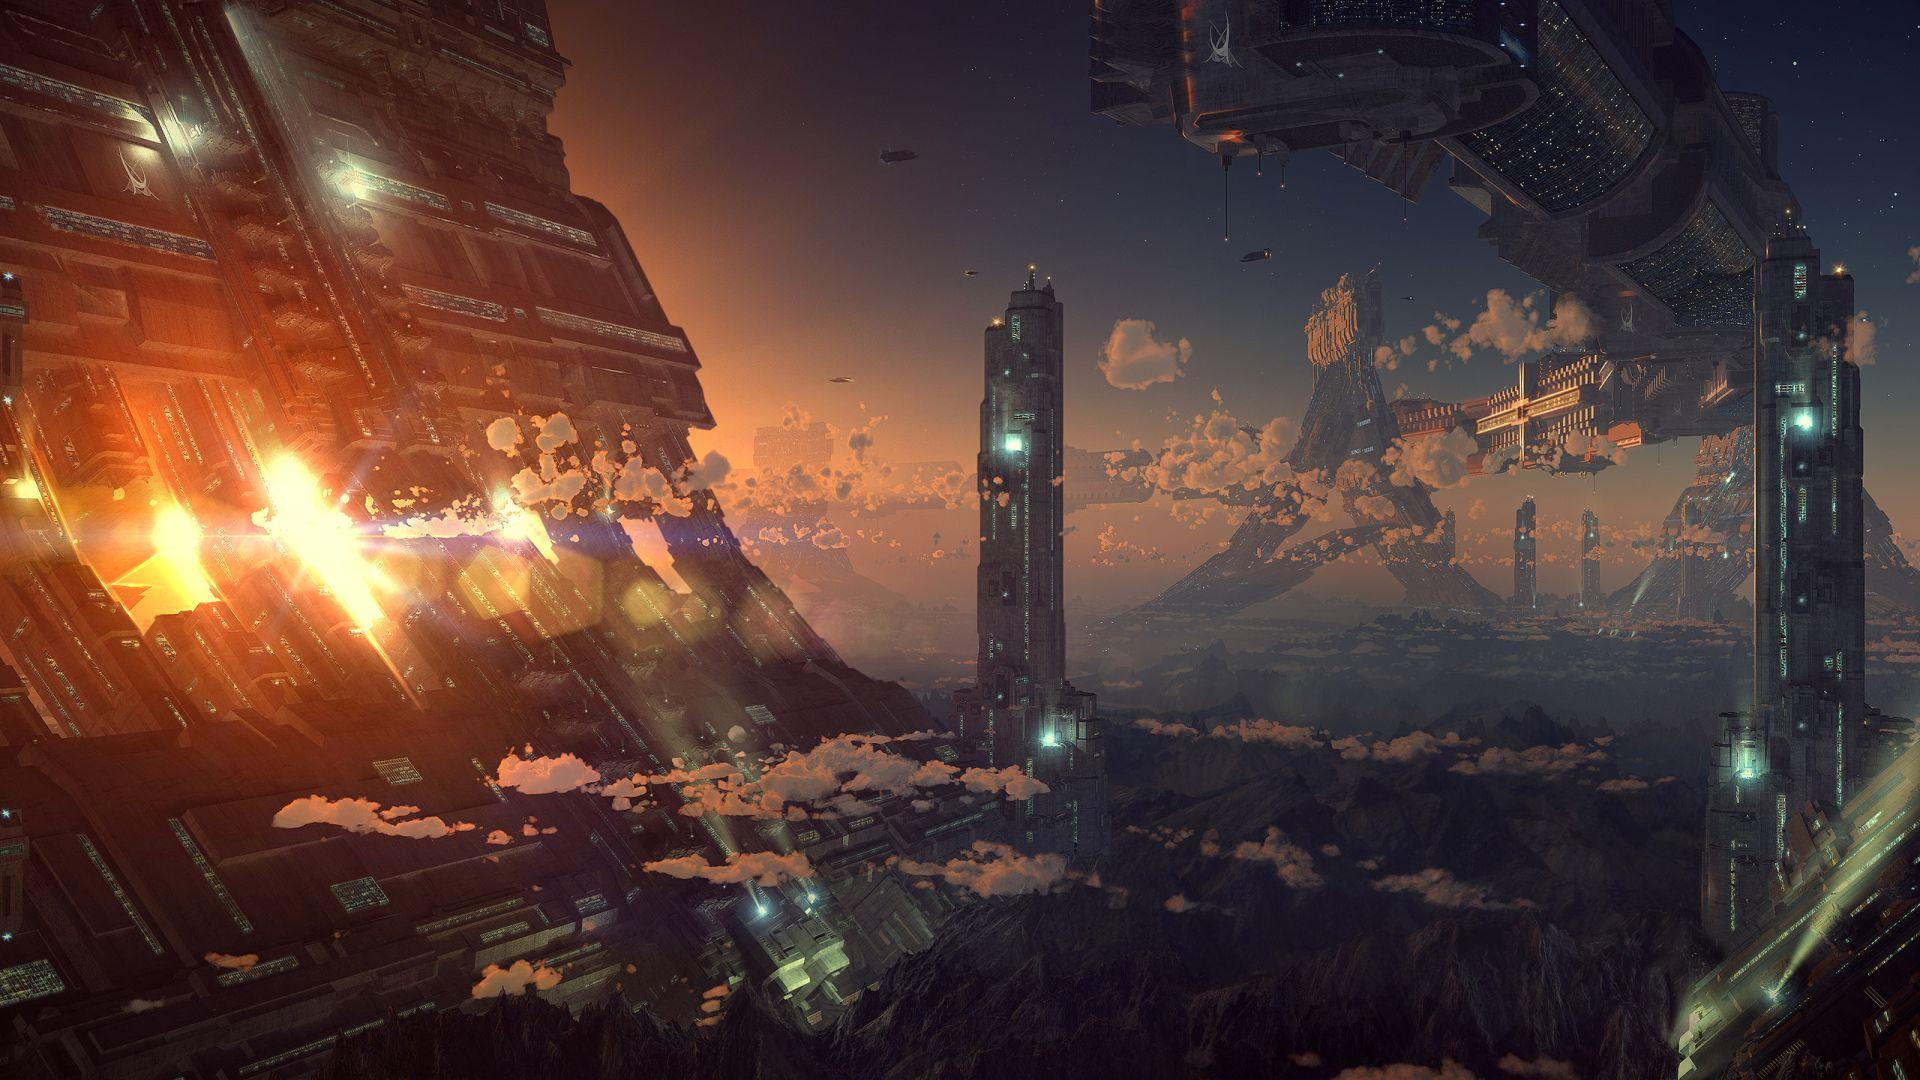 Sci Fi City Res: 1920x1080 HD / Size:272kb. Views: 55414